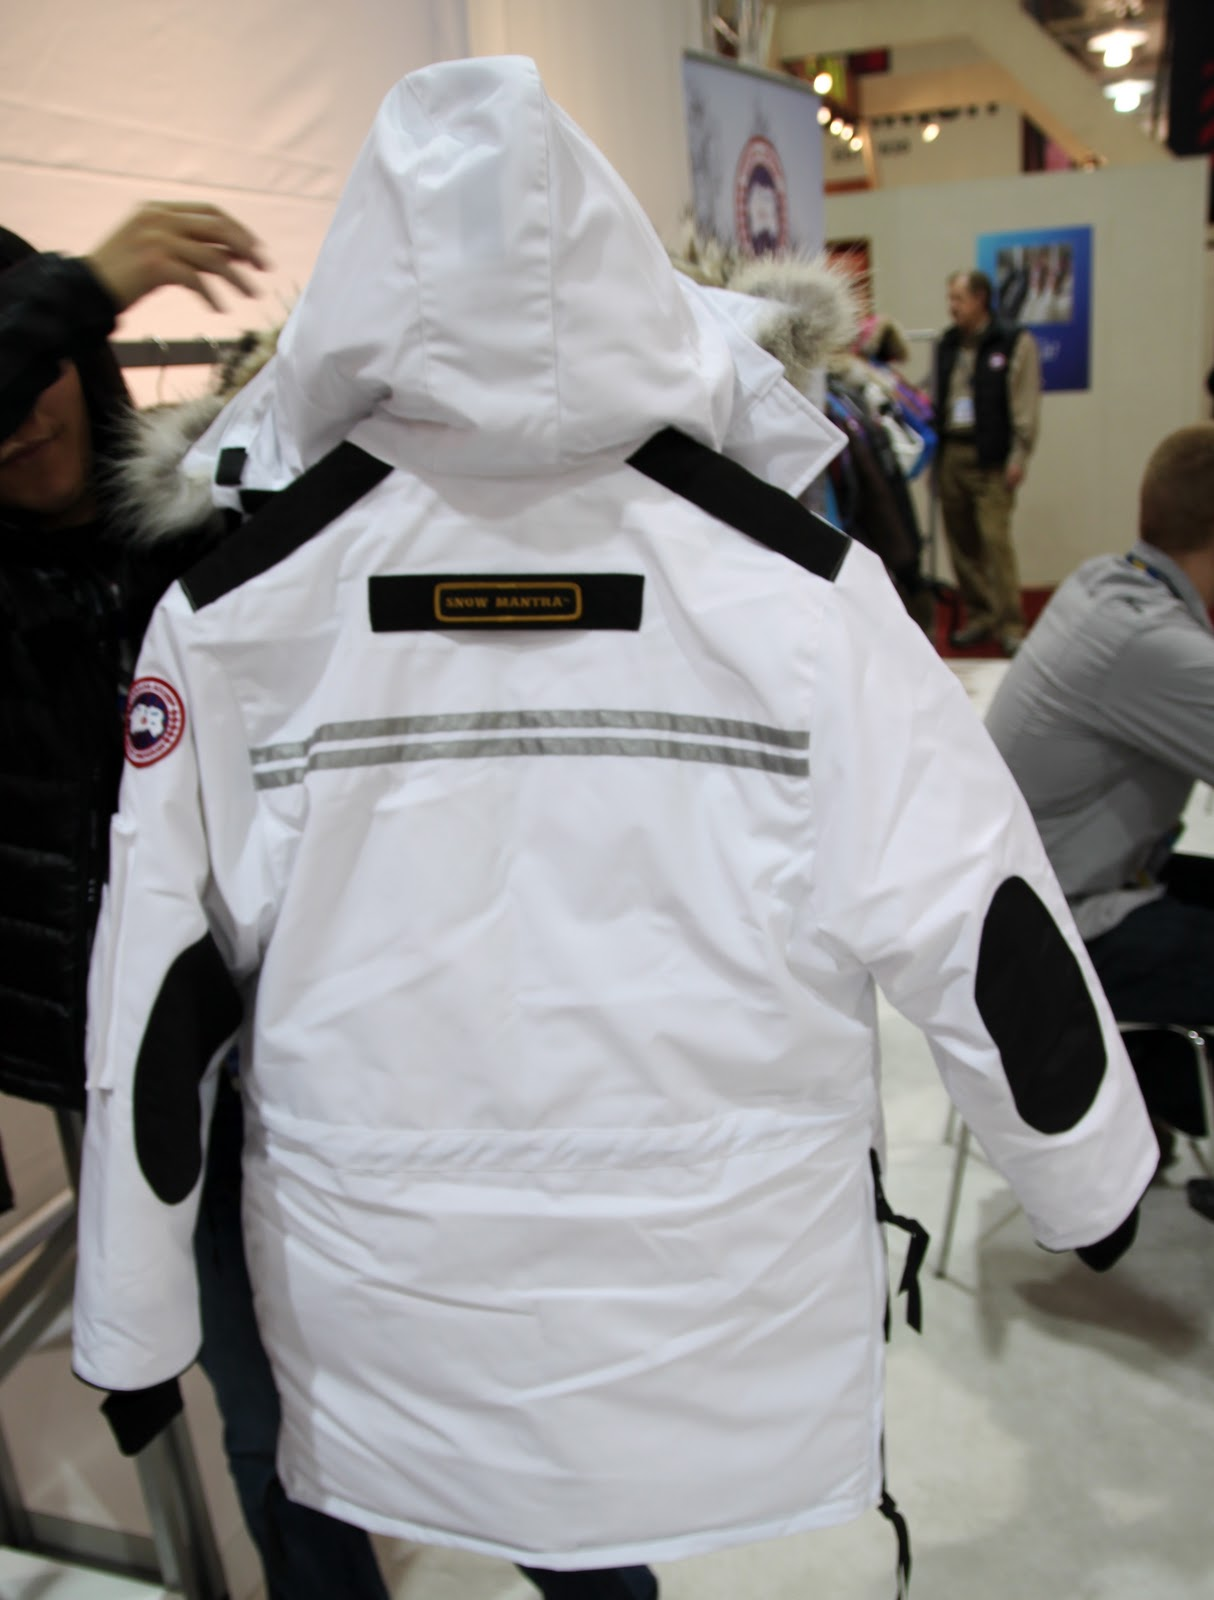 replica canada goose jackets 2014 spring always give you warm